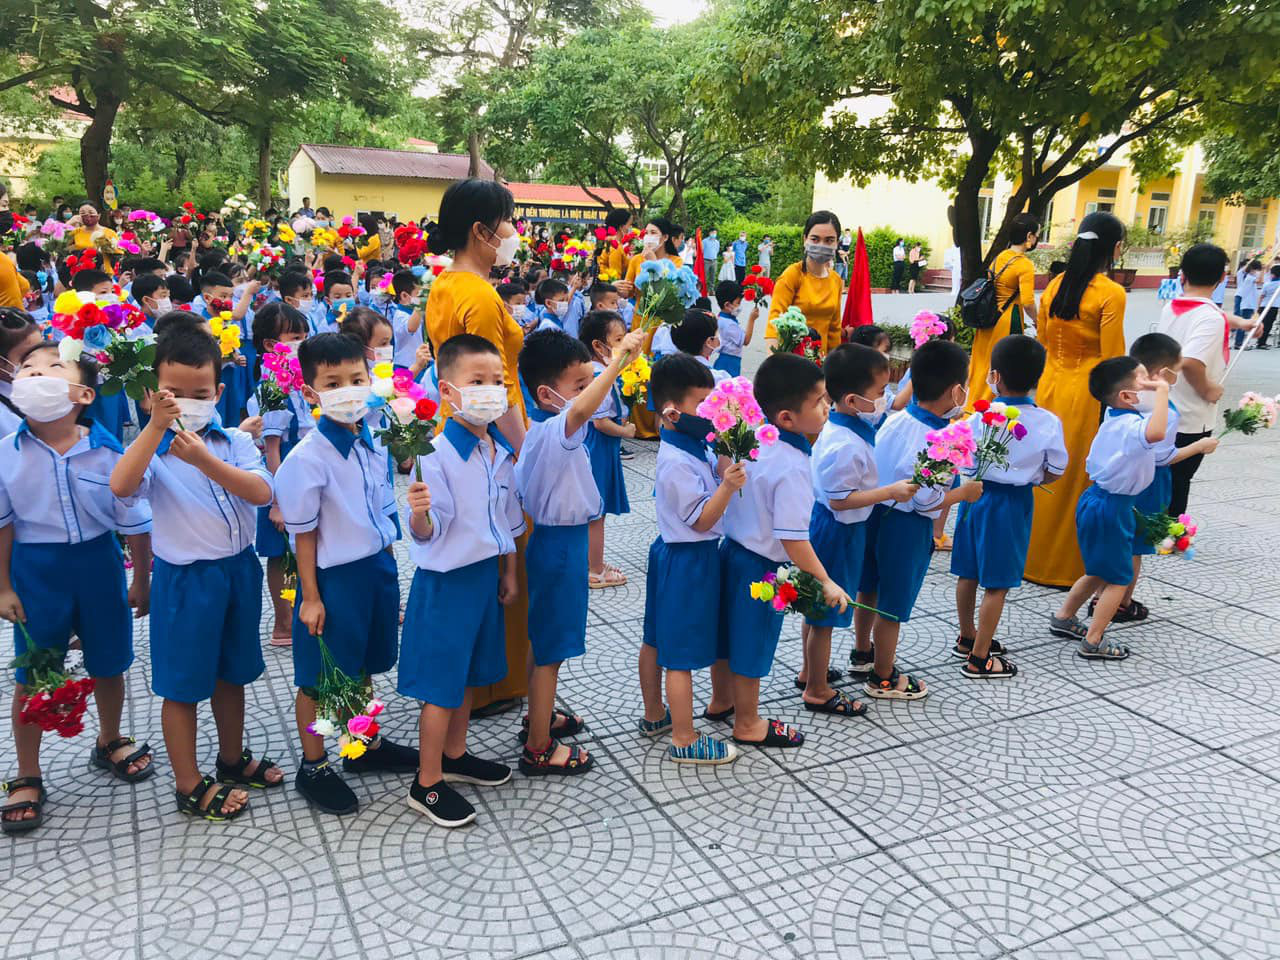 A school year opening ceremony at an elementary school in Phu Tho Province, September 5, 2021. Photo: Vinh Ha / Tuoi Tre